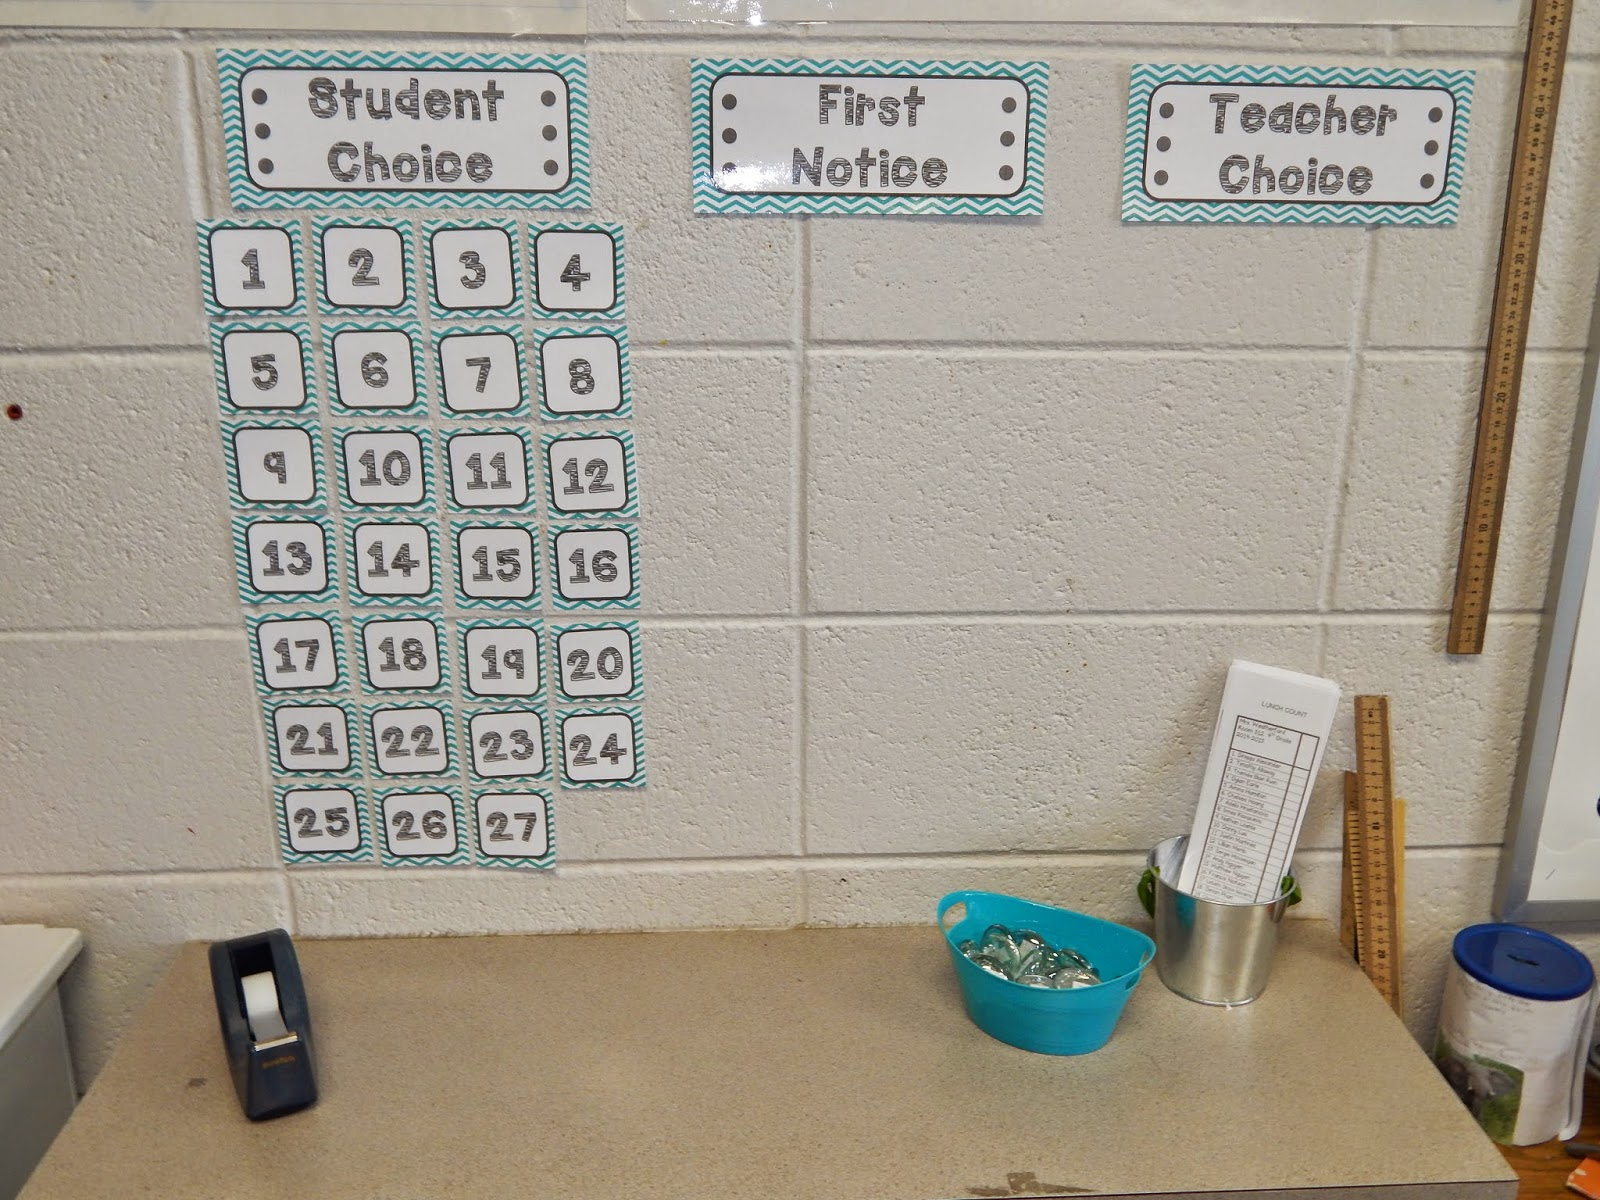 Collaborative Learning Classroom Management : Images about classroom management on pinterest